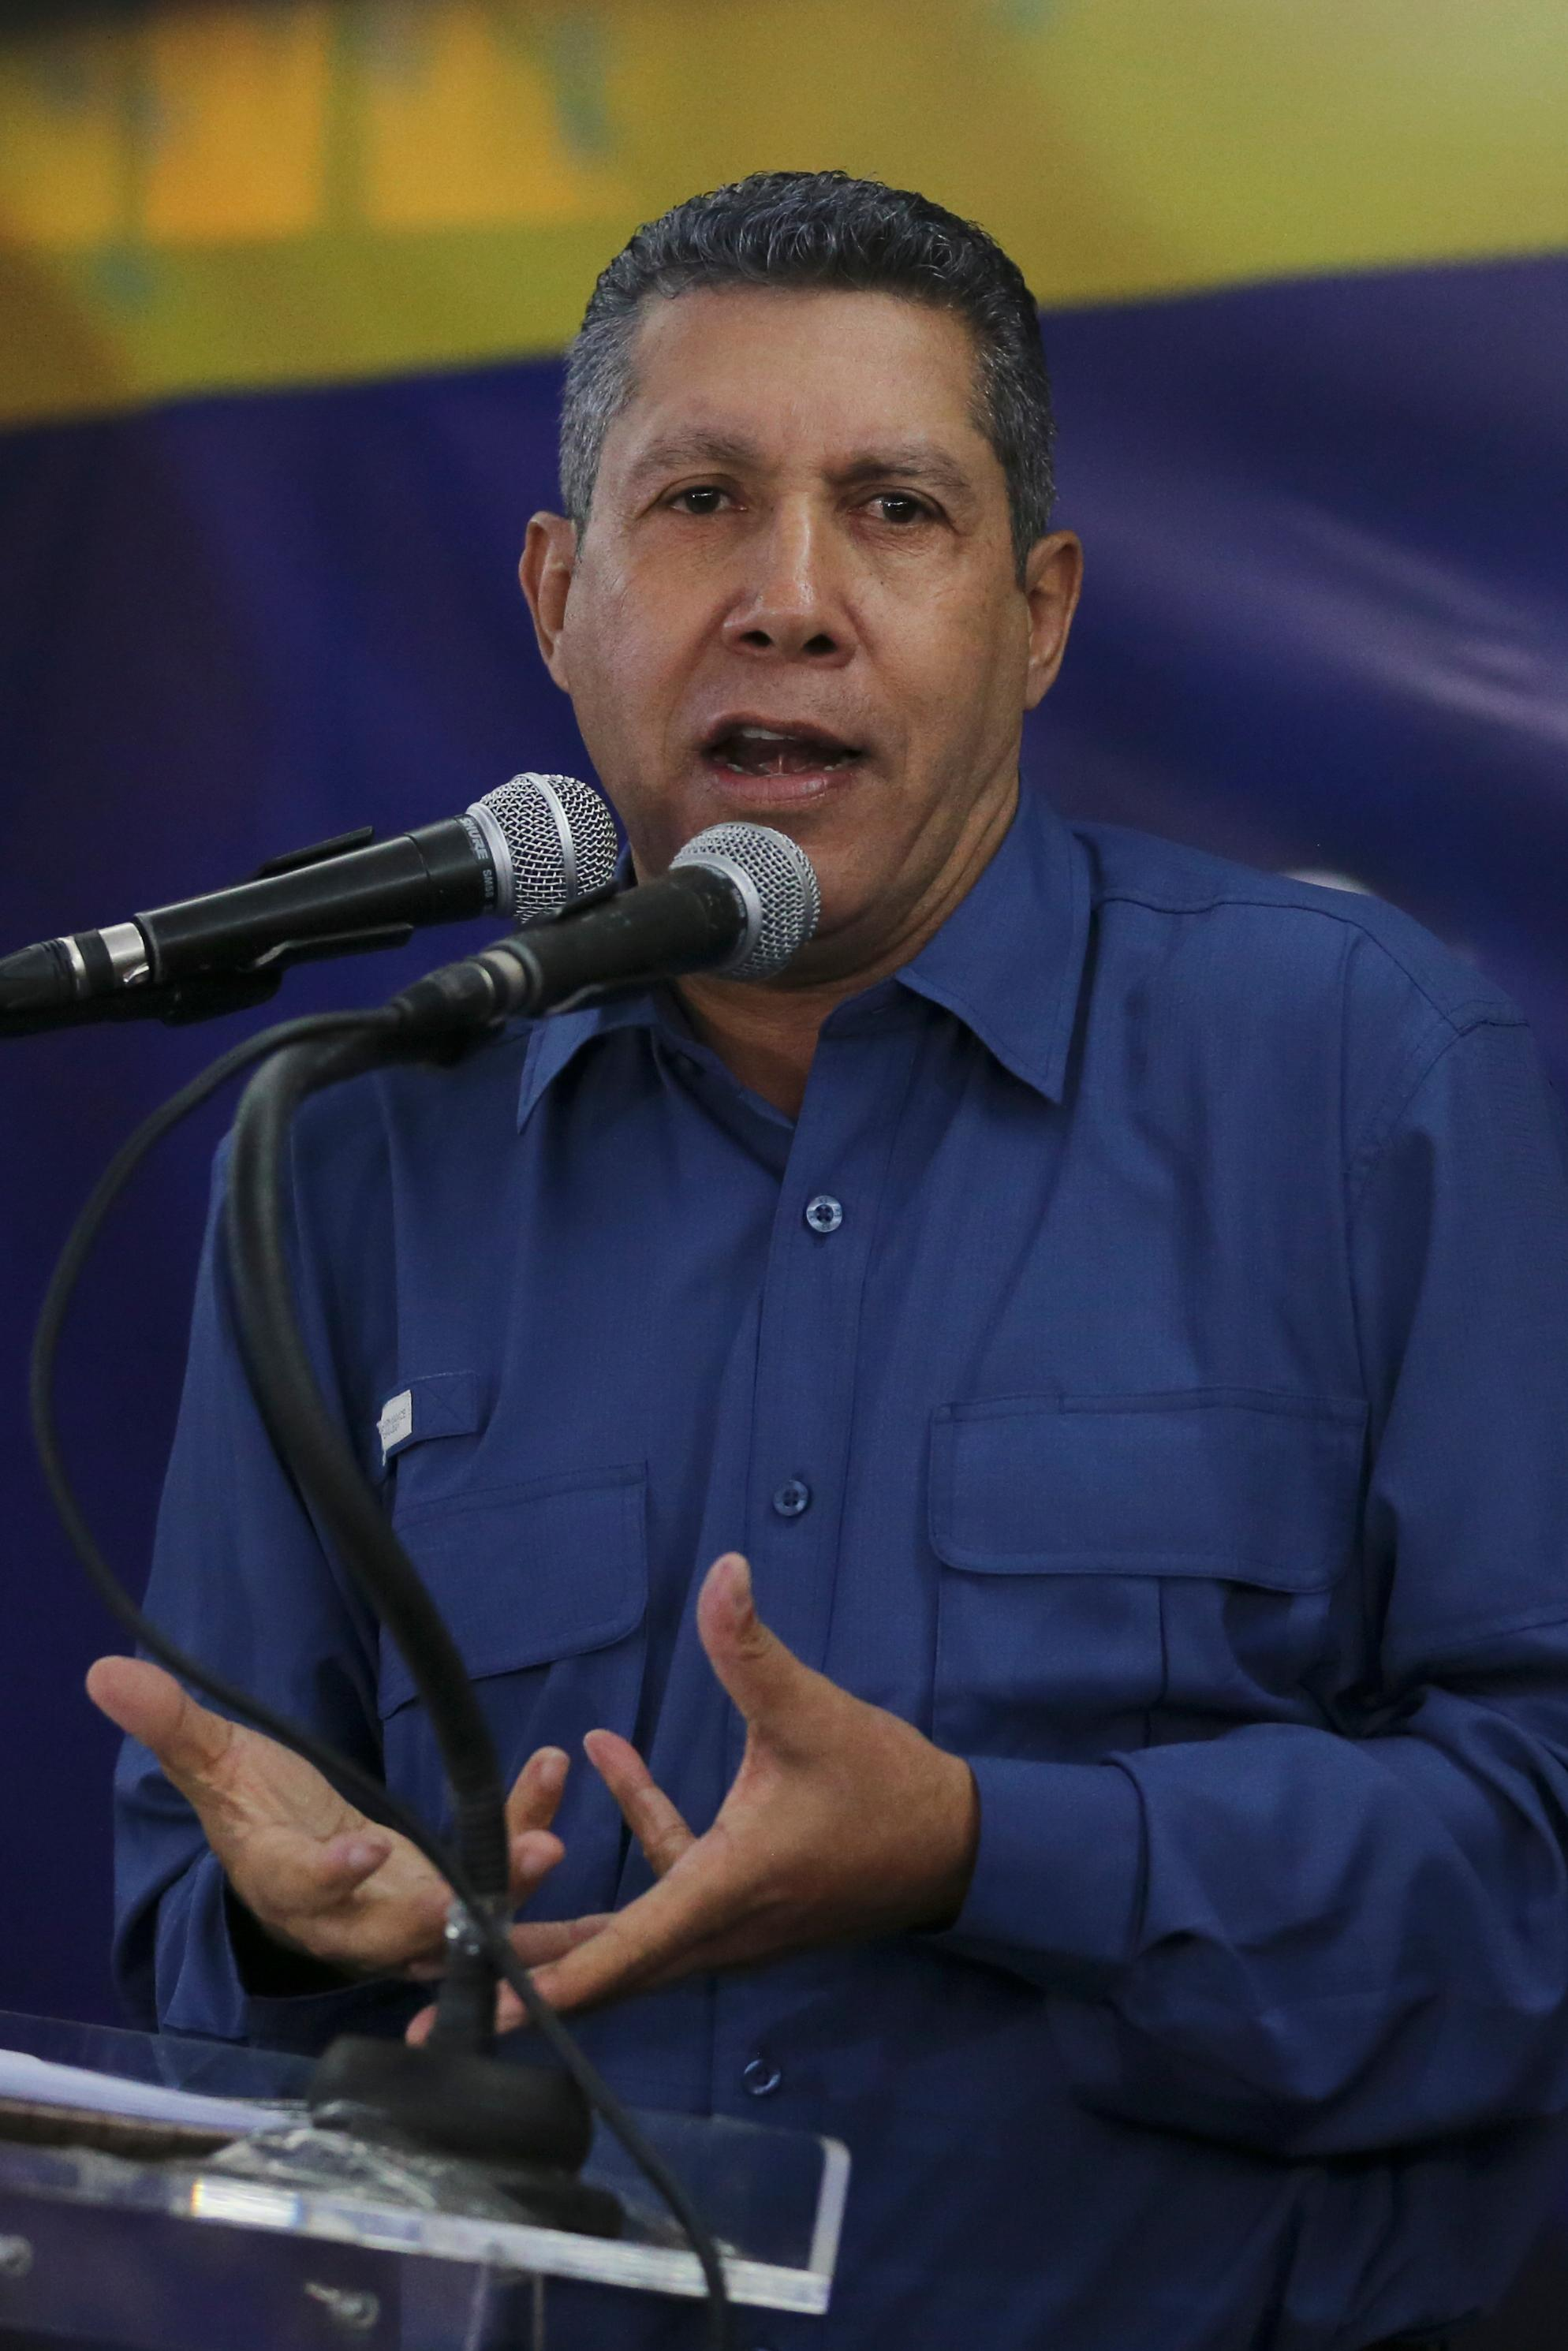 Anti-government presidential candidate Henri Falcon addresses supporters in Caracas, Venezuela, Sunday, May 20, 2018. Falcon said that the presidential election was marred by irregularities and lacks legitimacy. (AP Photo/Fernando Llano)